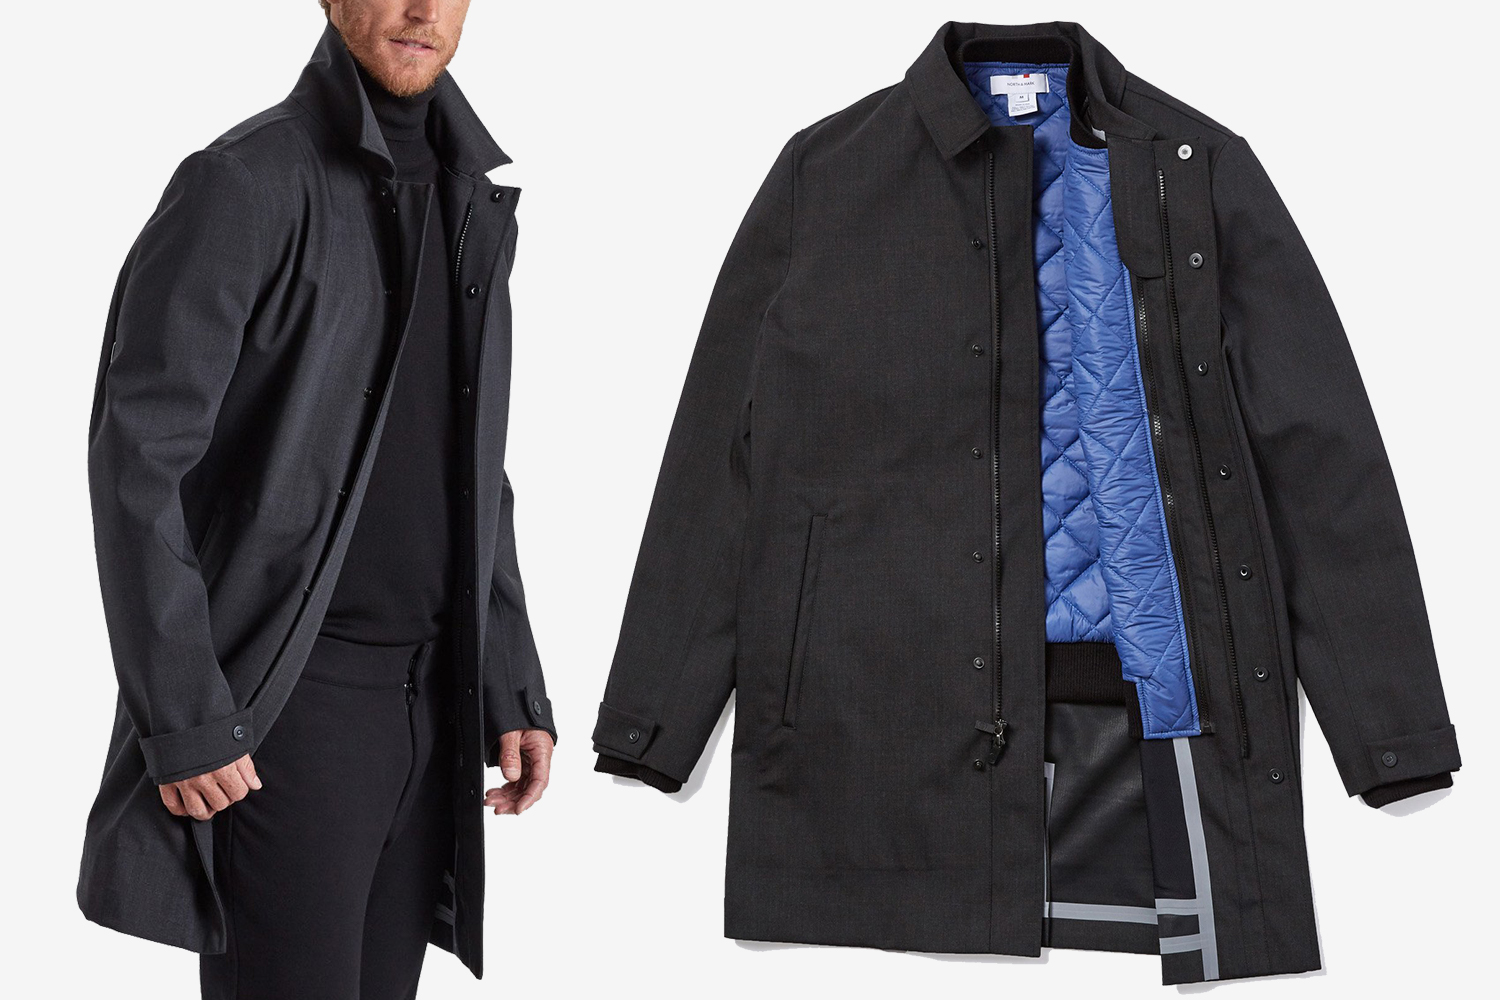 Take up to $300 off technical, versatile and weatherproof spring jackets.